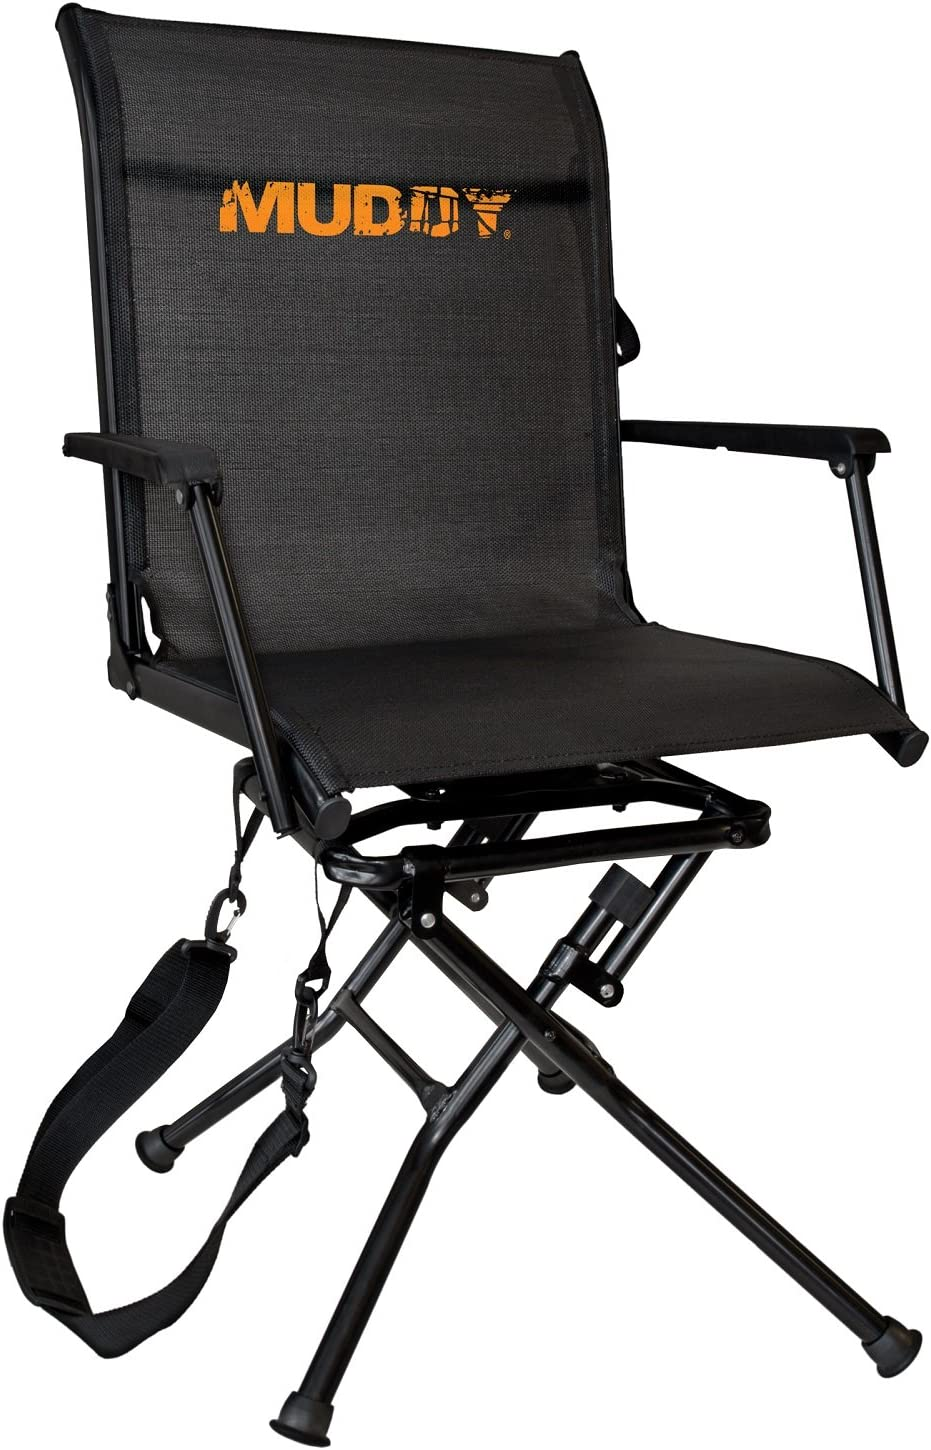 Top 10 Best Hunting chair that swivels 3